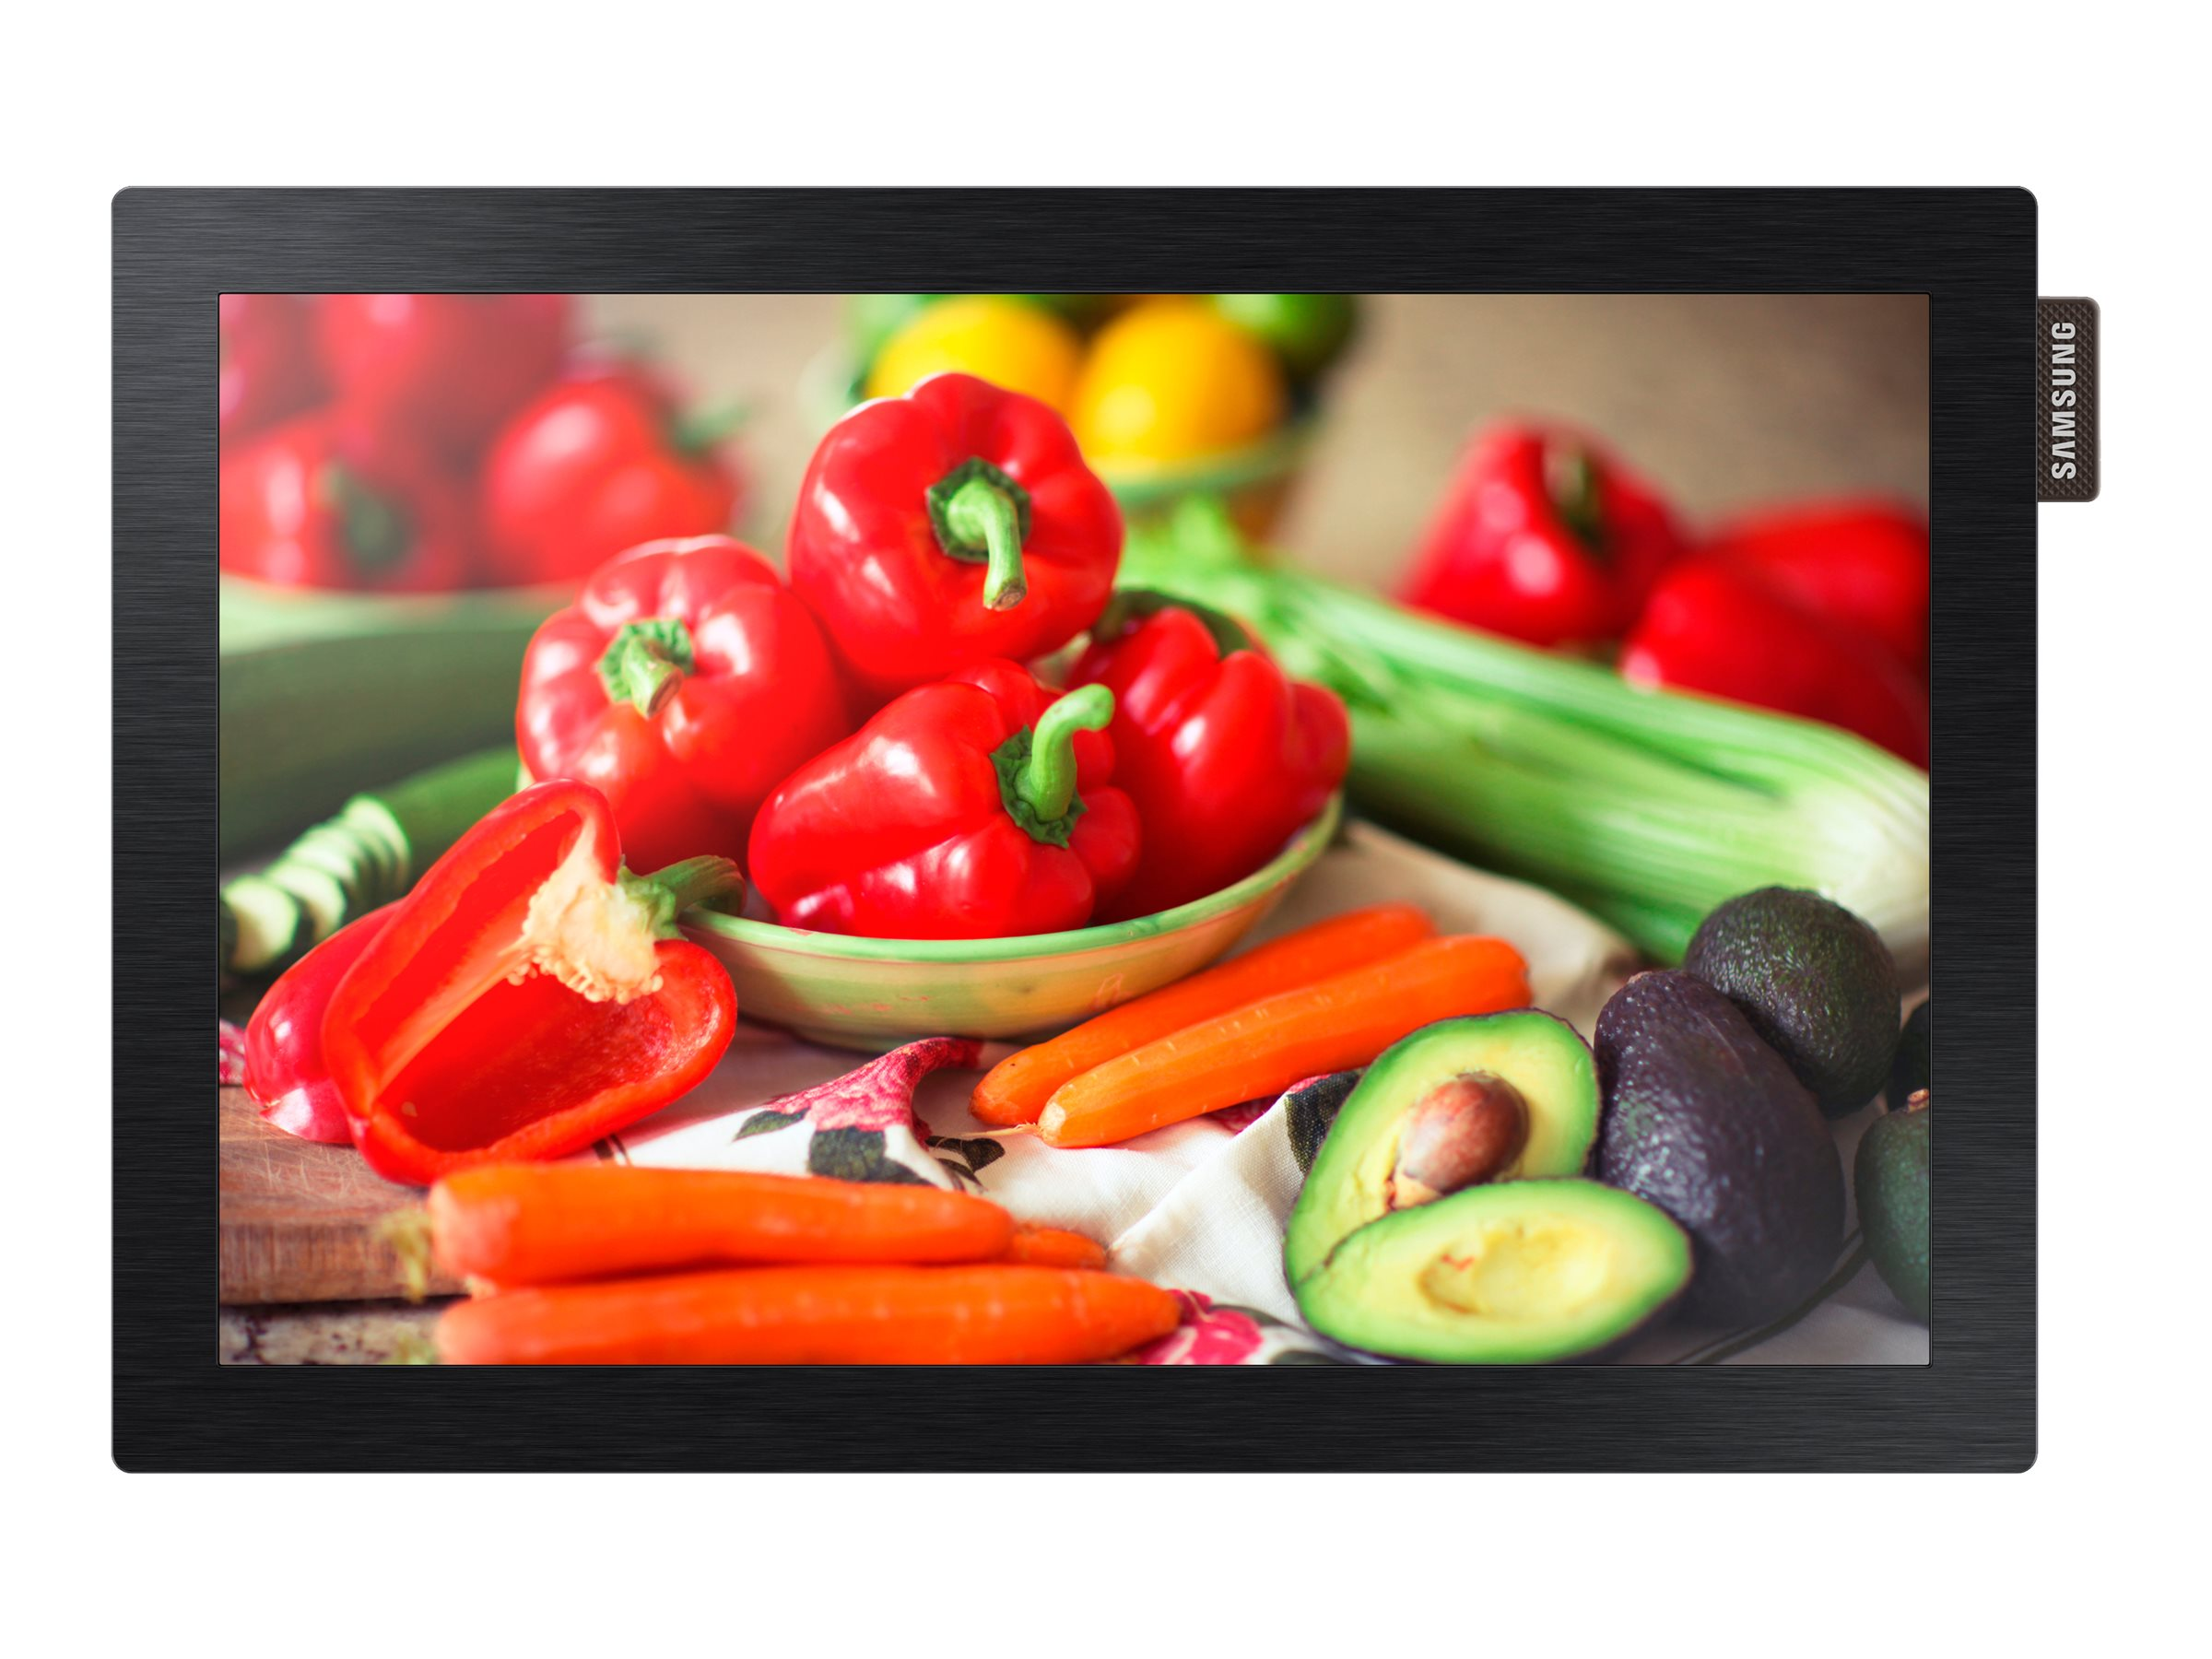 Samsung 10.1 DB10D LED-LCD Display, Black, DB10D, 18124781, Digital Signage Systems & Modules